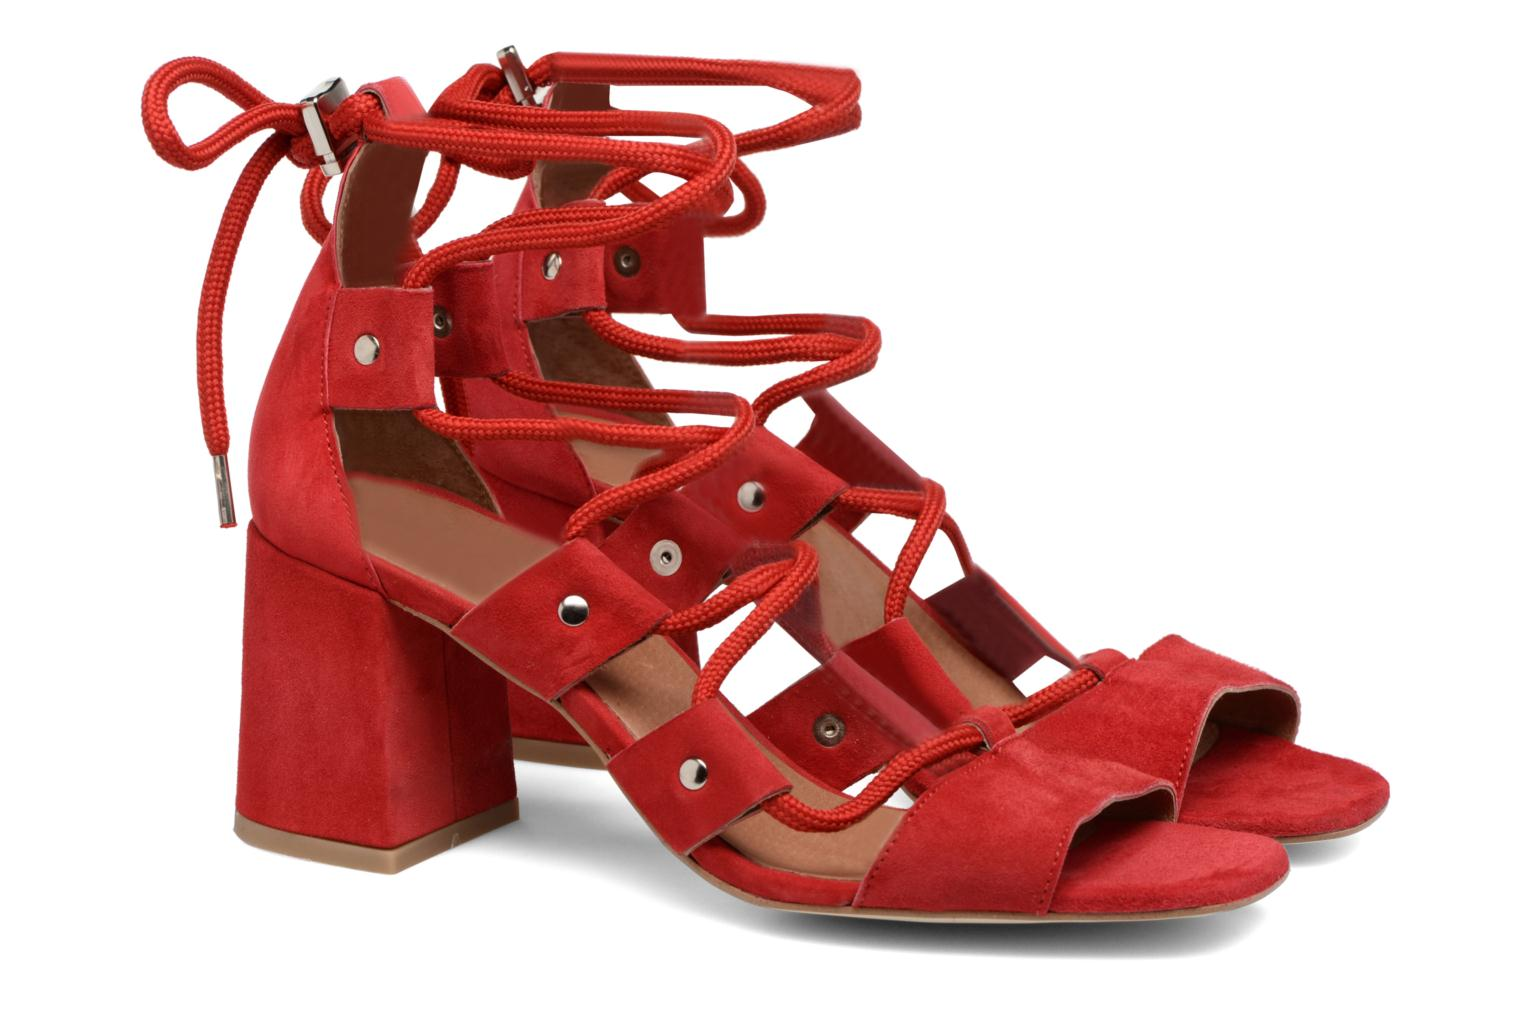 Made by SARENZA 90's Girls Gang Sandales à Talons #4 Rood Supply Goedkope Prijs dnNIH8qp